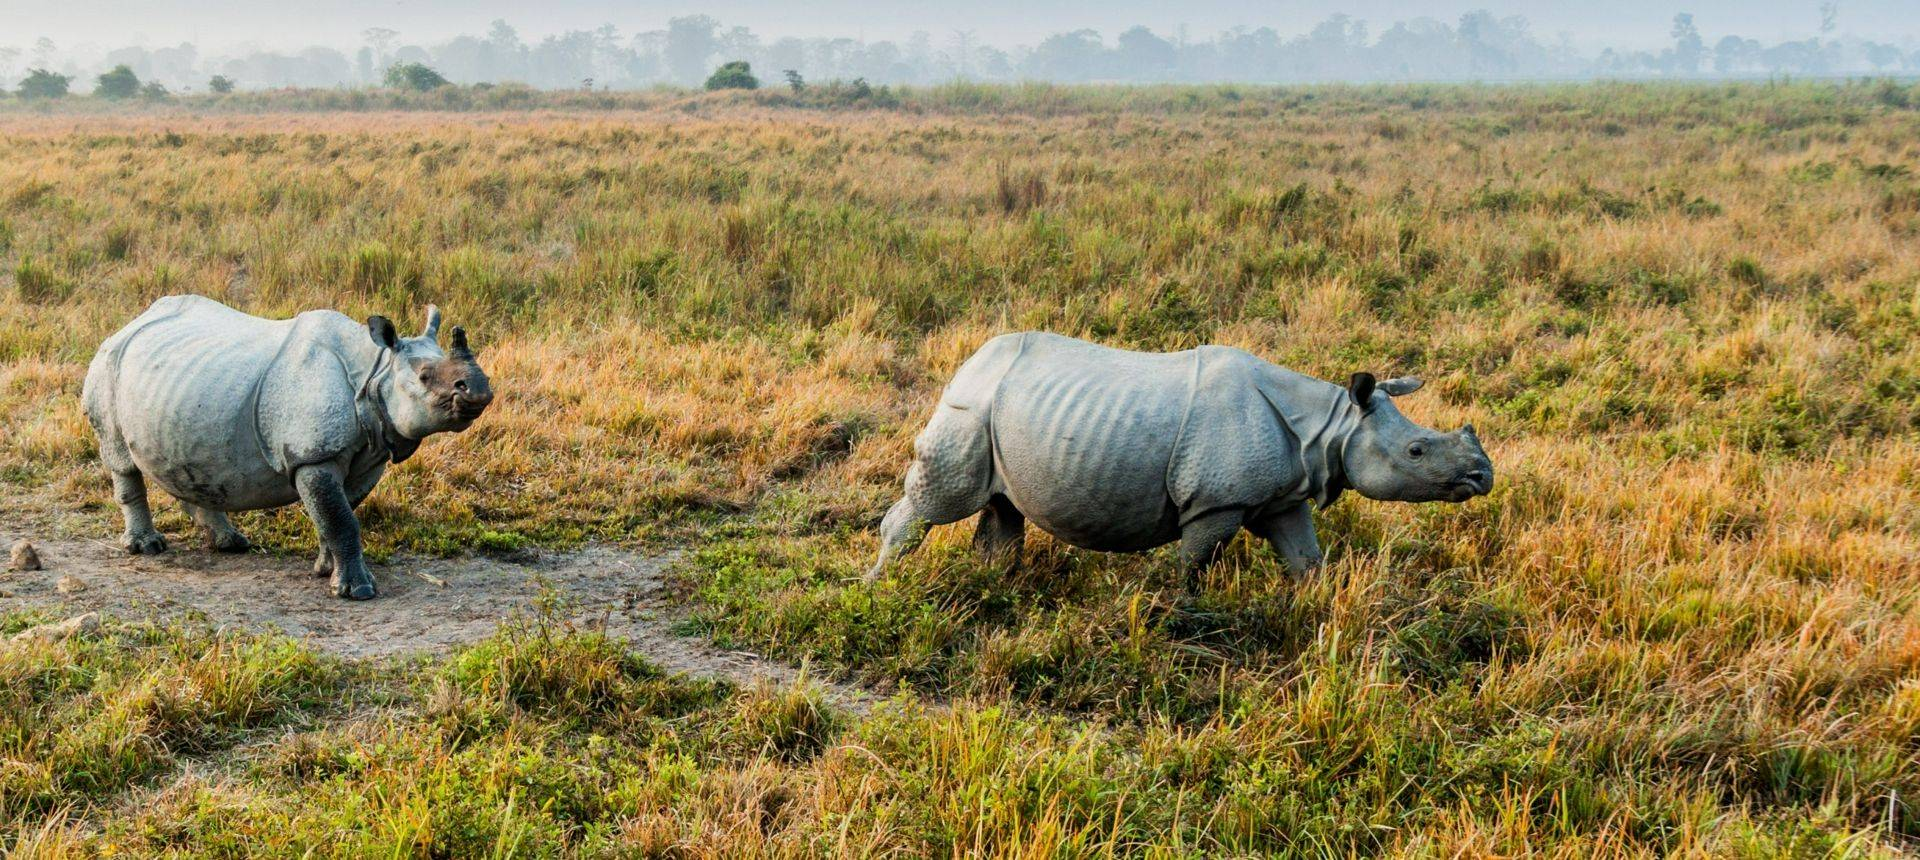 Indian Rhino, Kaziranga National Park Shutterstock 782876899